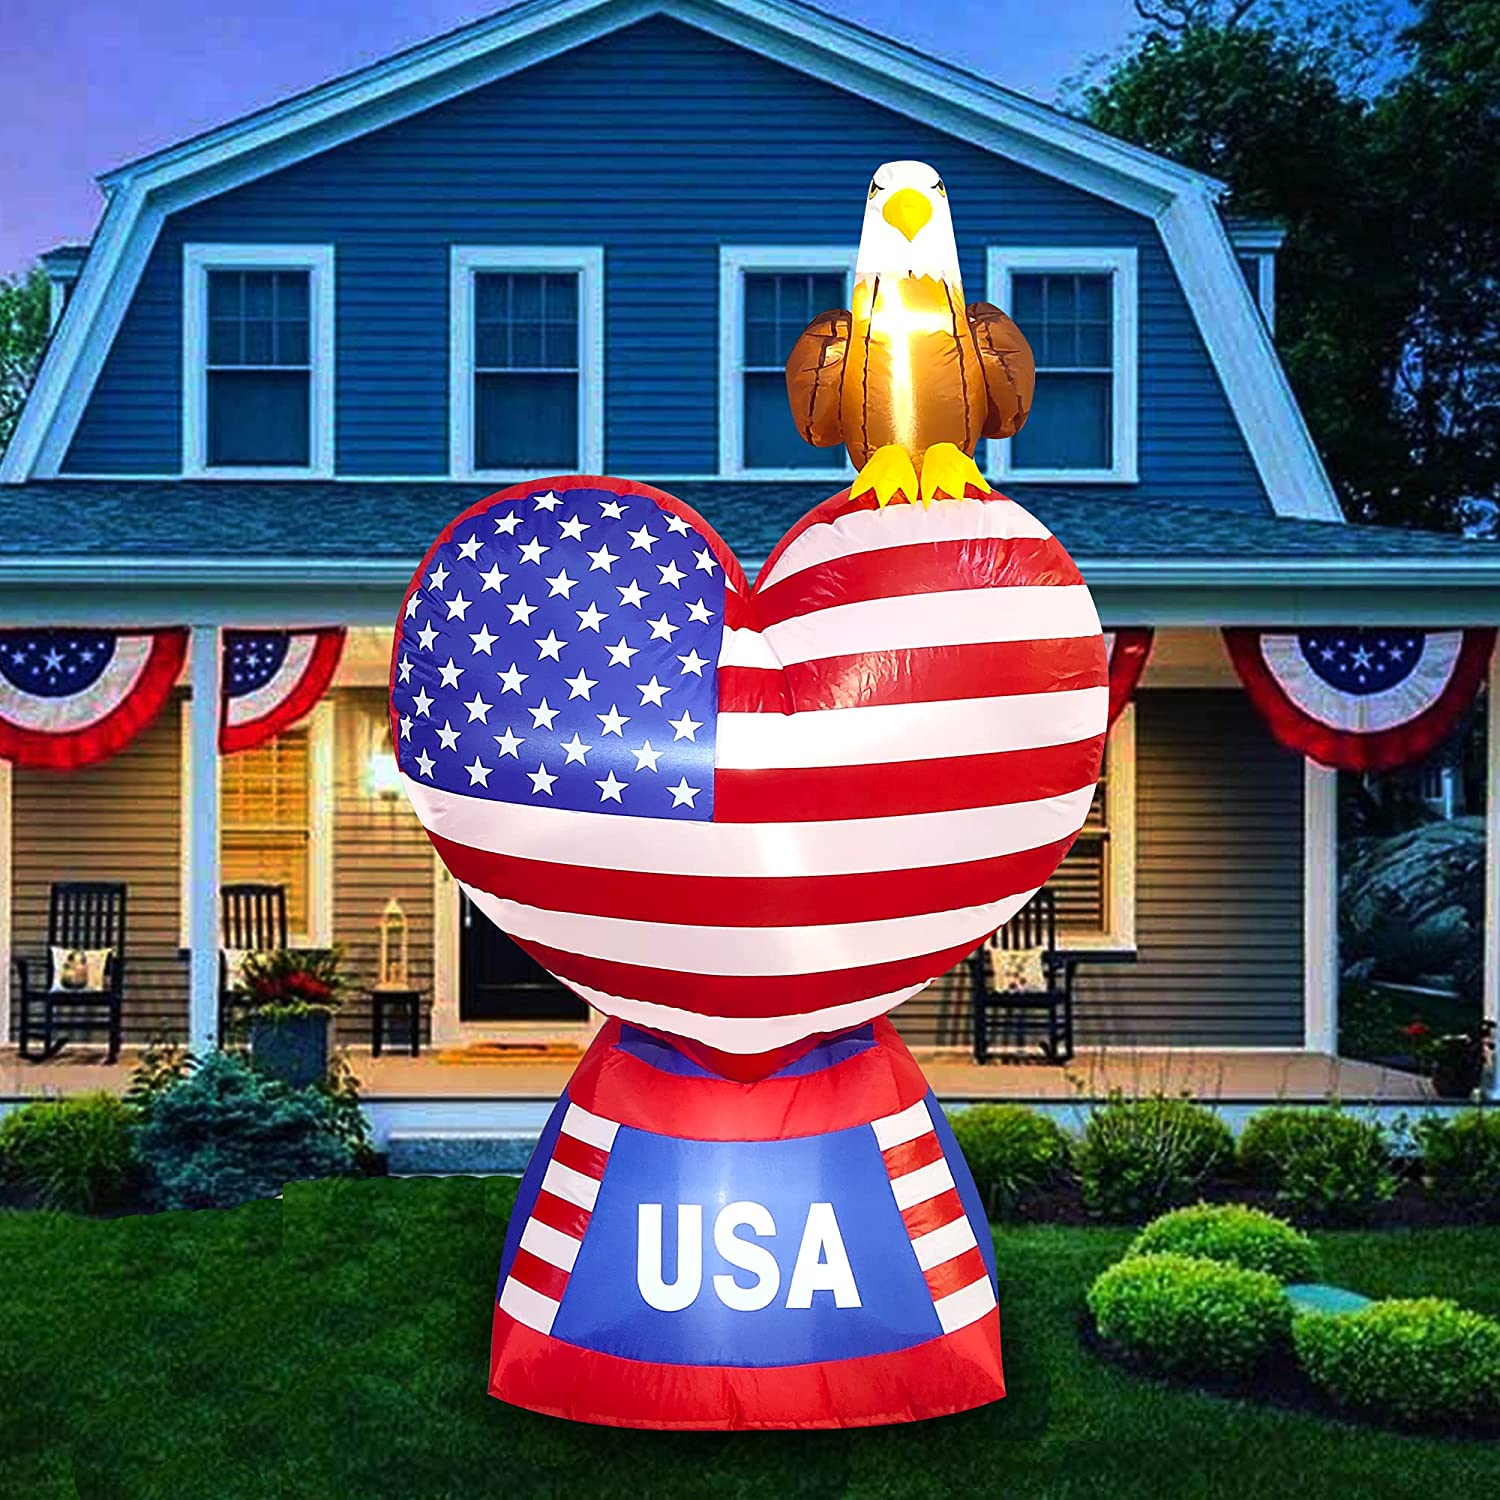 LAUJOY 5 Foot Patriotic Independence Day 4th of July Inflatable Love Heart American Flag Bald Eagle Blow Up Lighted Decor Parade Indoor Outdoor Holiday Garden Yard Decorations